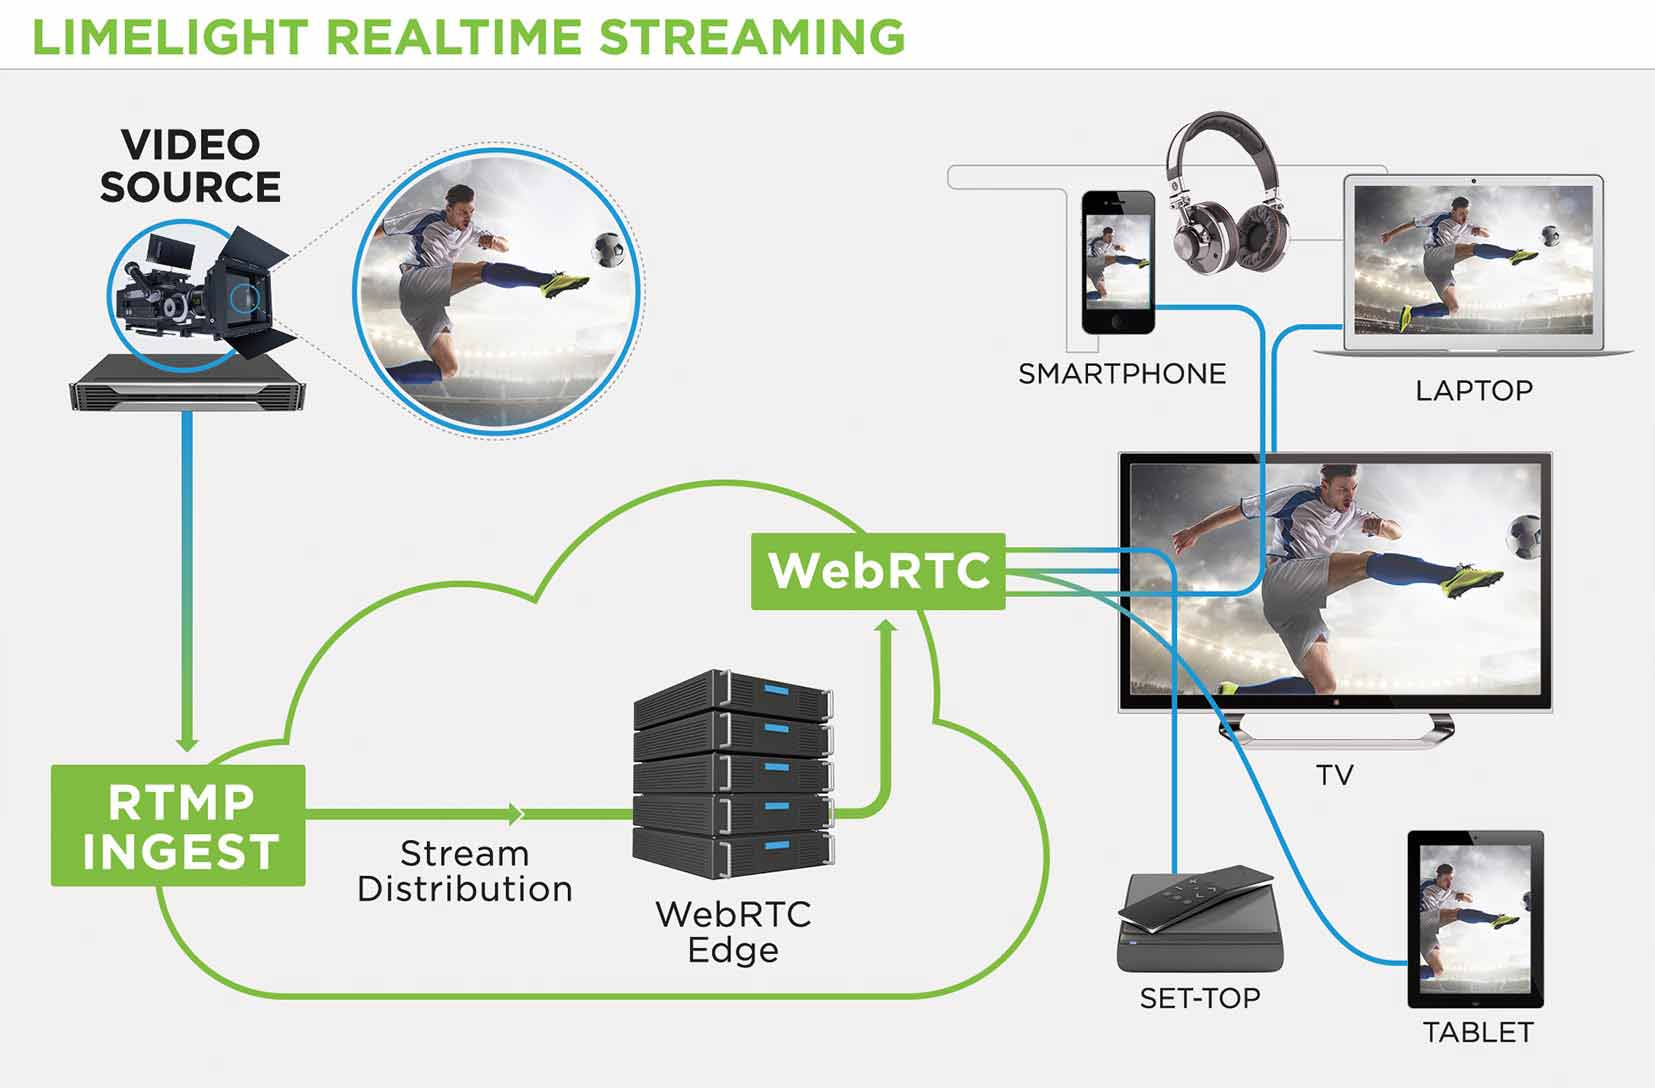 infographic-limelight_realtime_streaming